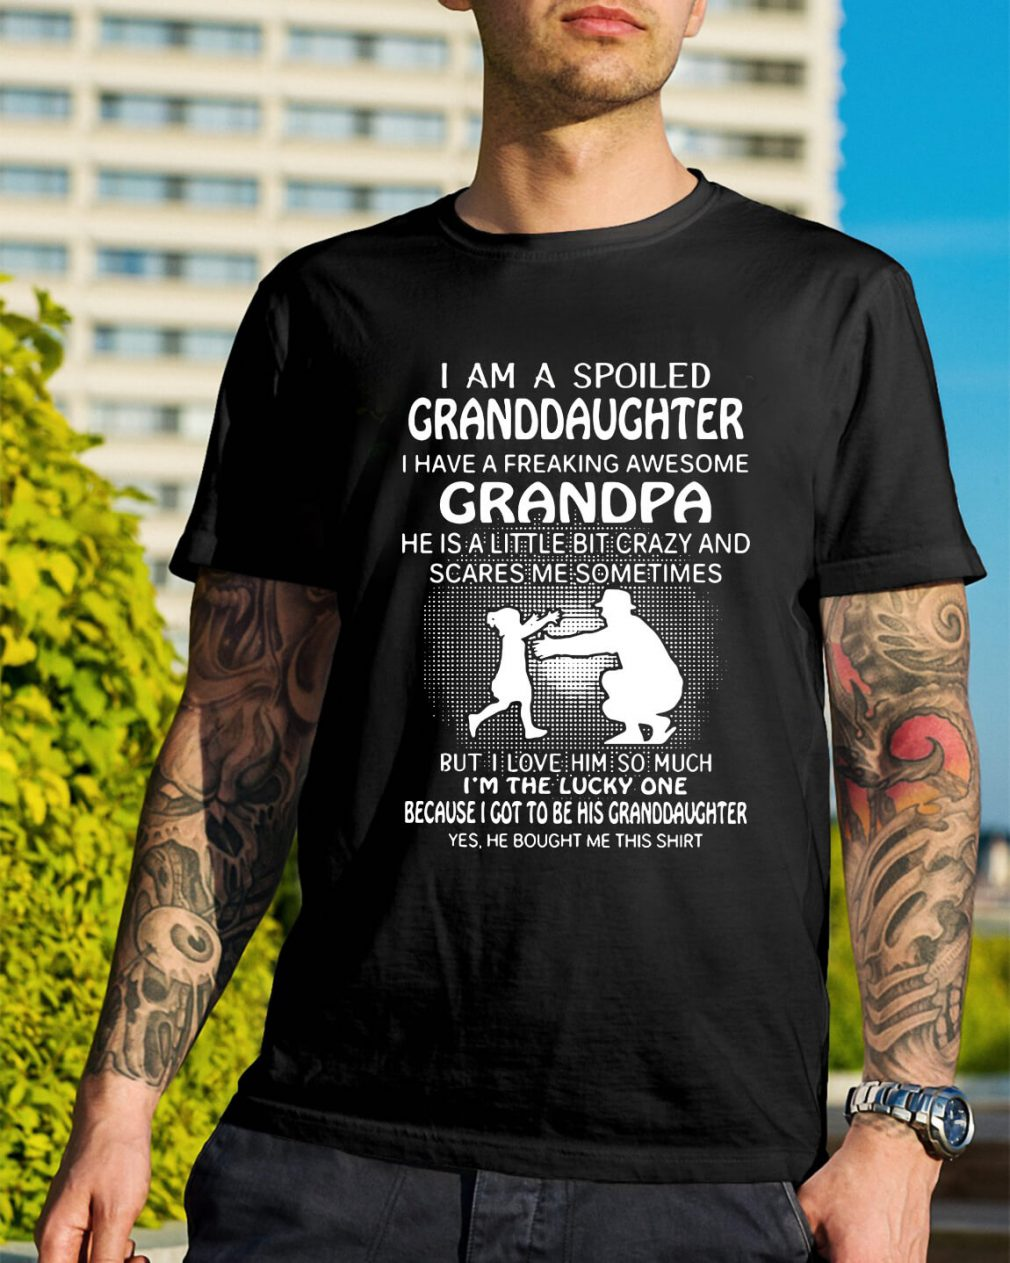 I am spoiled granddaughter I have a freaking awesome grandpa shirt